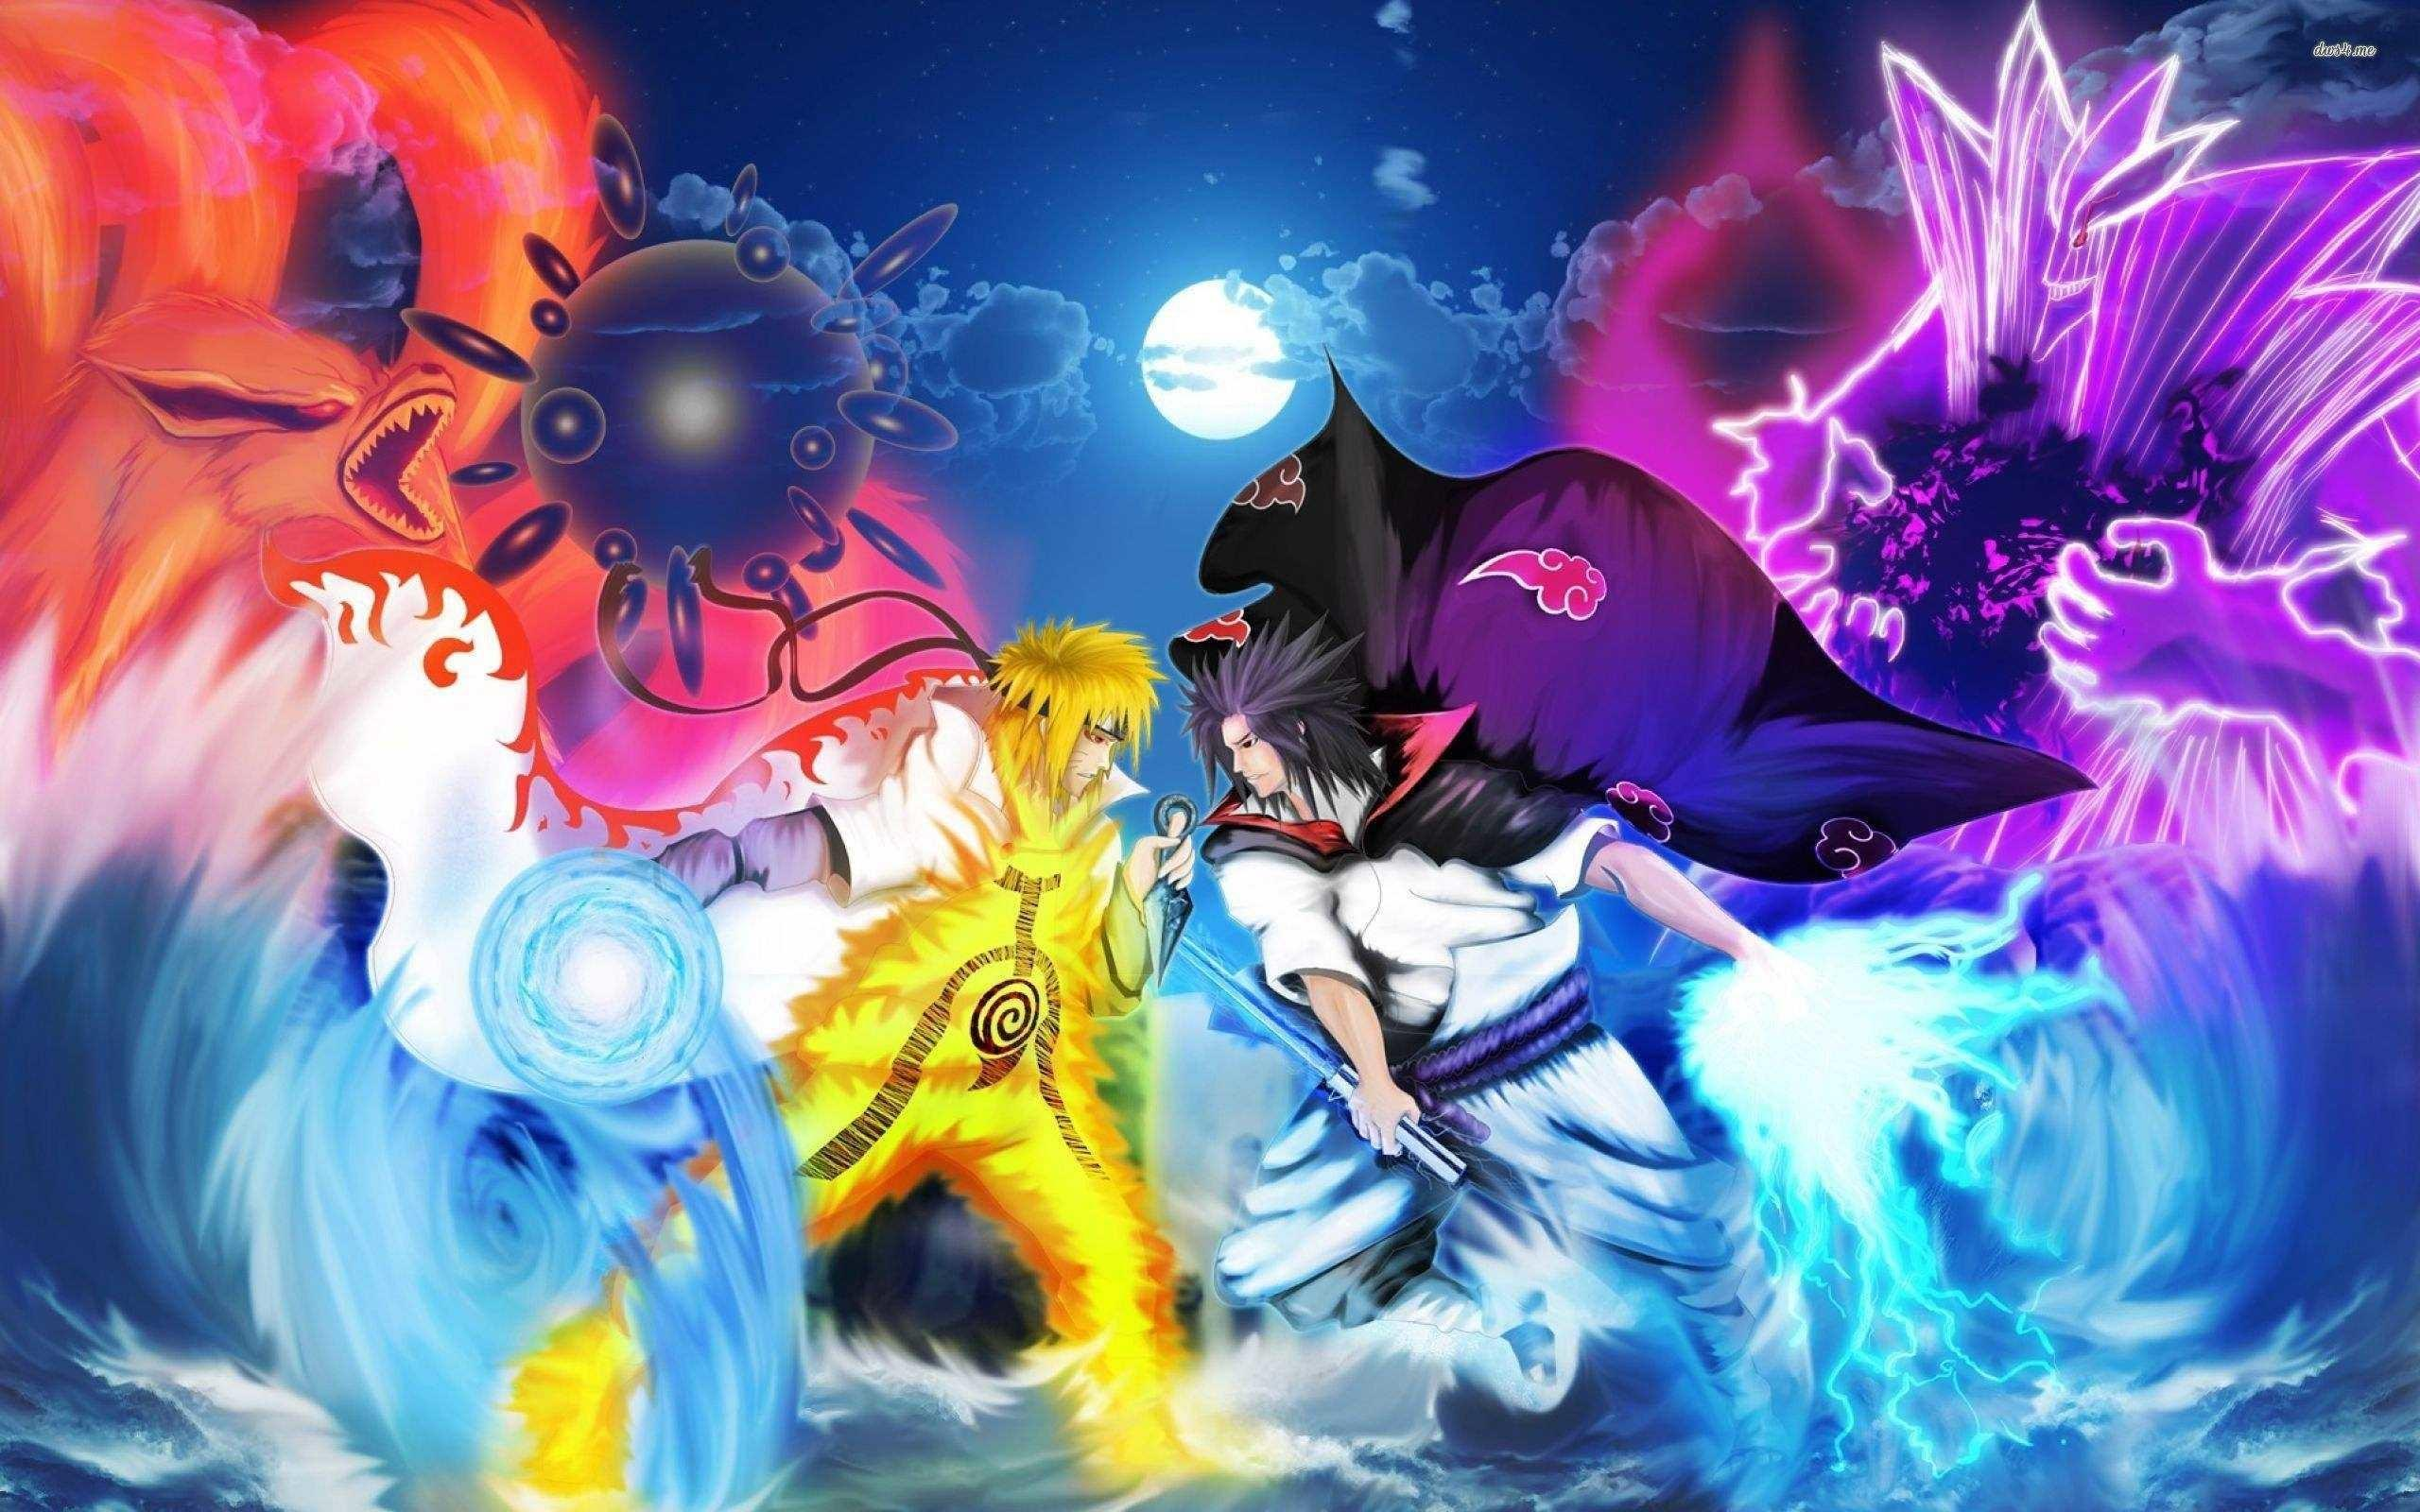 Oct 31, 2020 · original resolution: Anime Naruto Cool Wallpapers - Wallpaper Cave